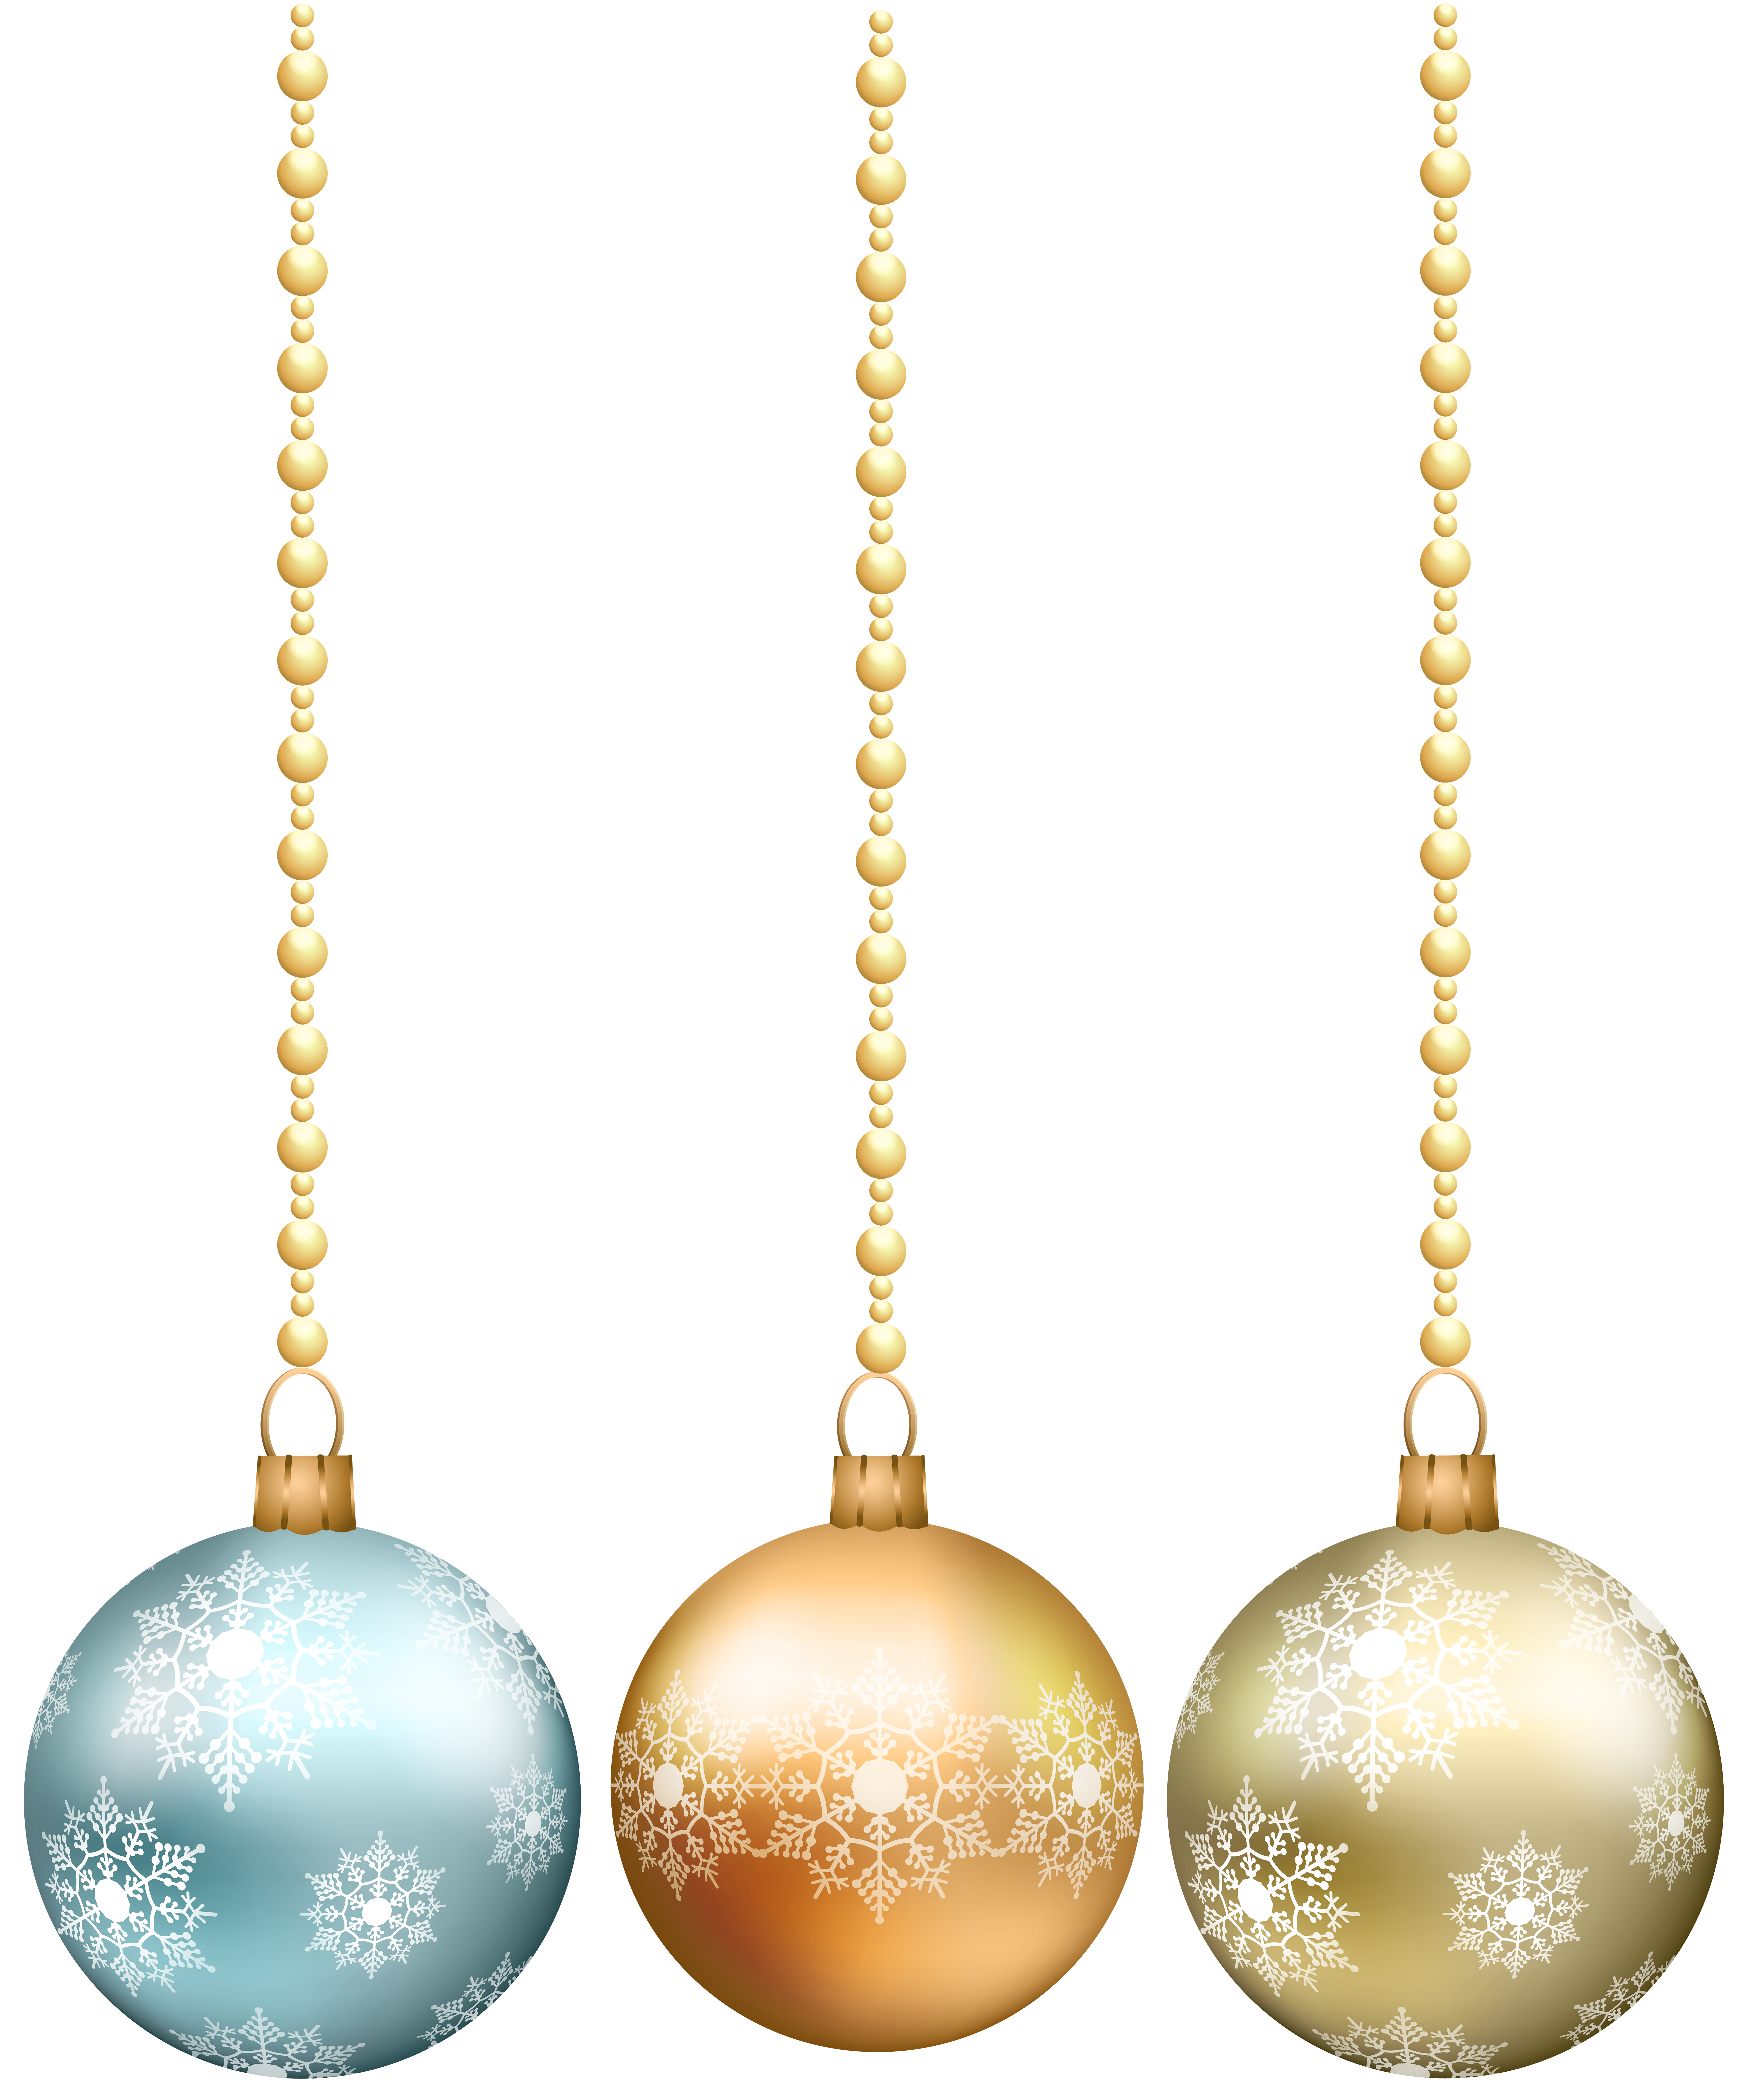 Hanging snowflake clipart image library library Image file formats Lossless compression - Hanging Christmas Balls ... image library library